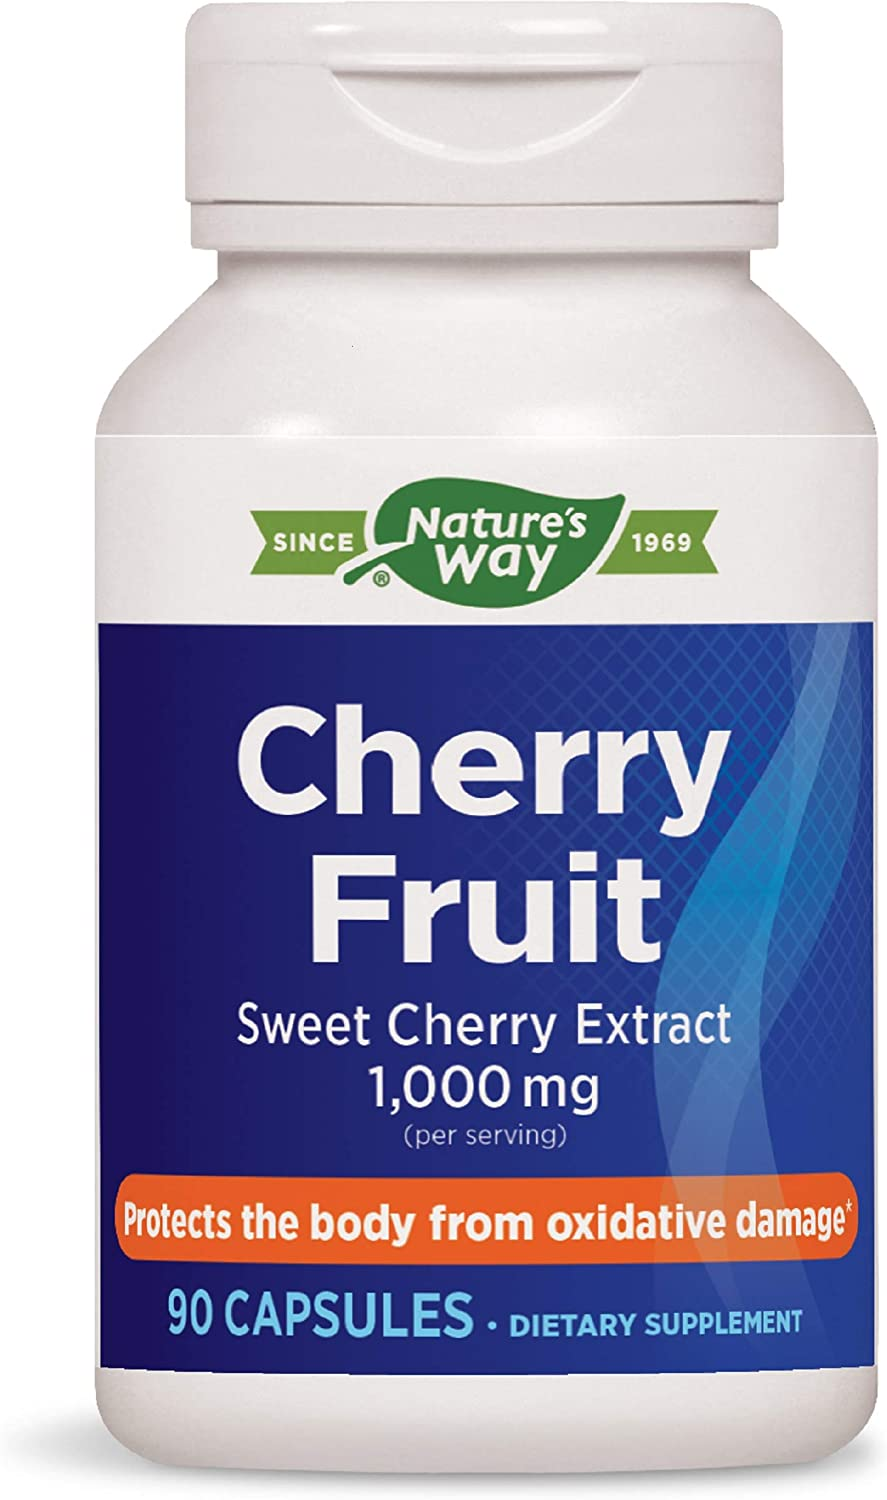 Enzymatic Therapy Nature's Way Cherry Fruit, Sweet Cherry Extract, 1,000 mg per Serving, 90 Capsules (08549)